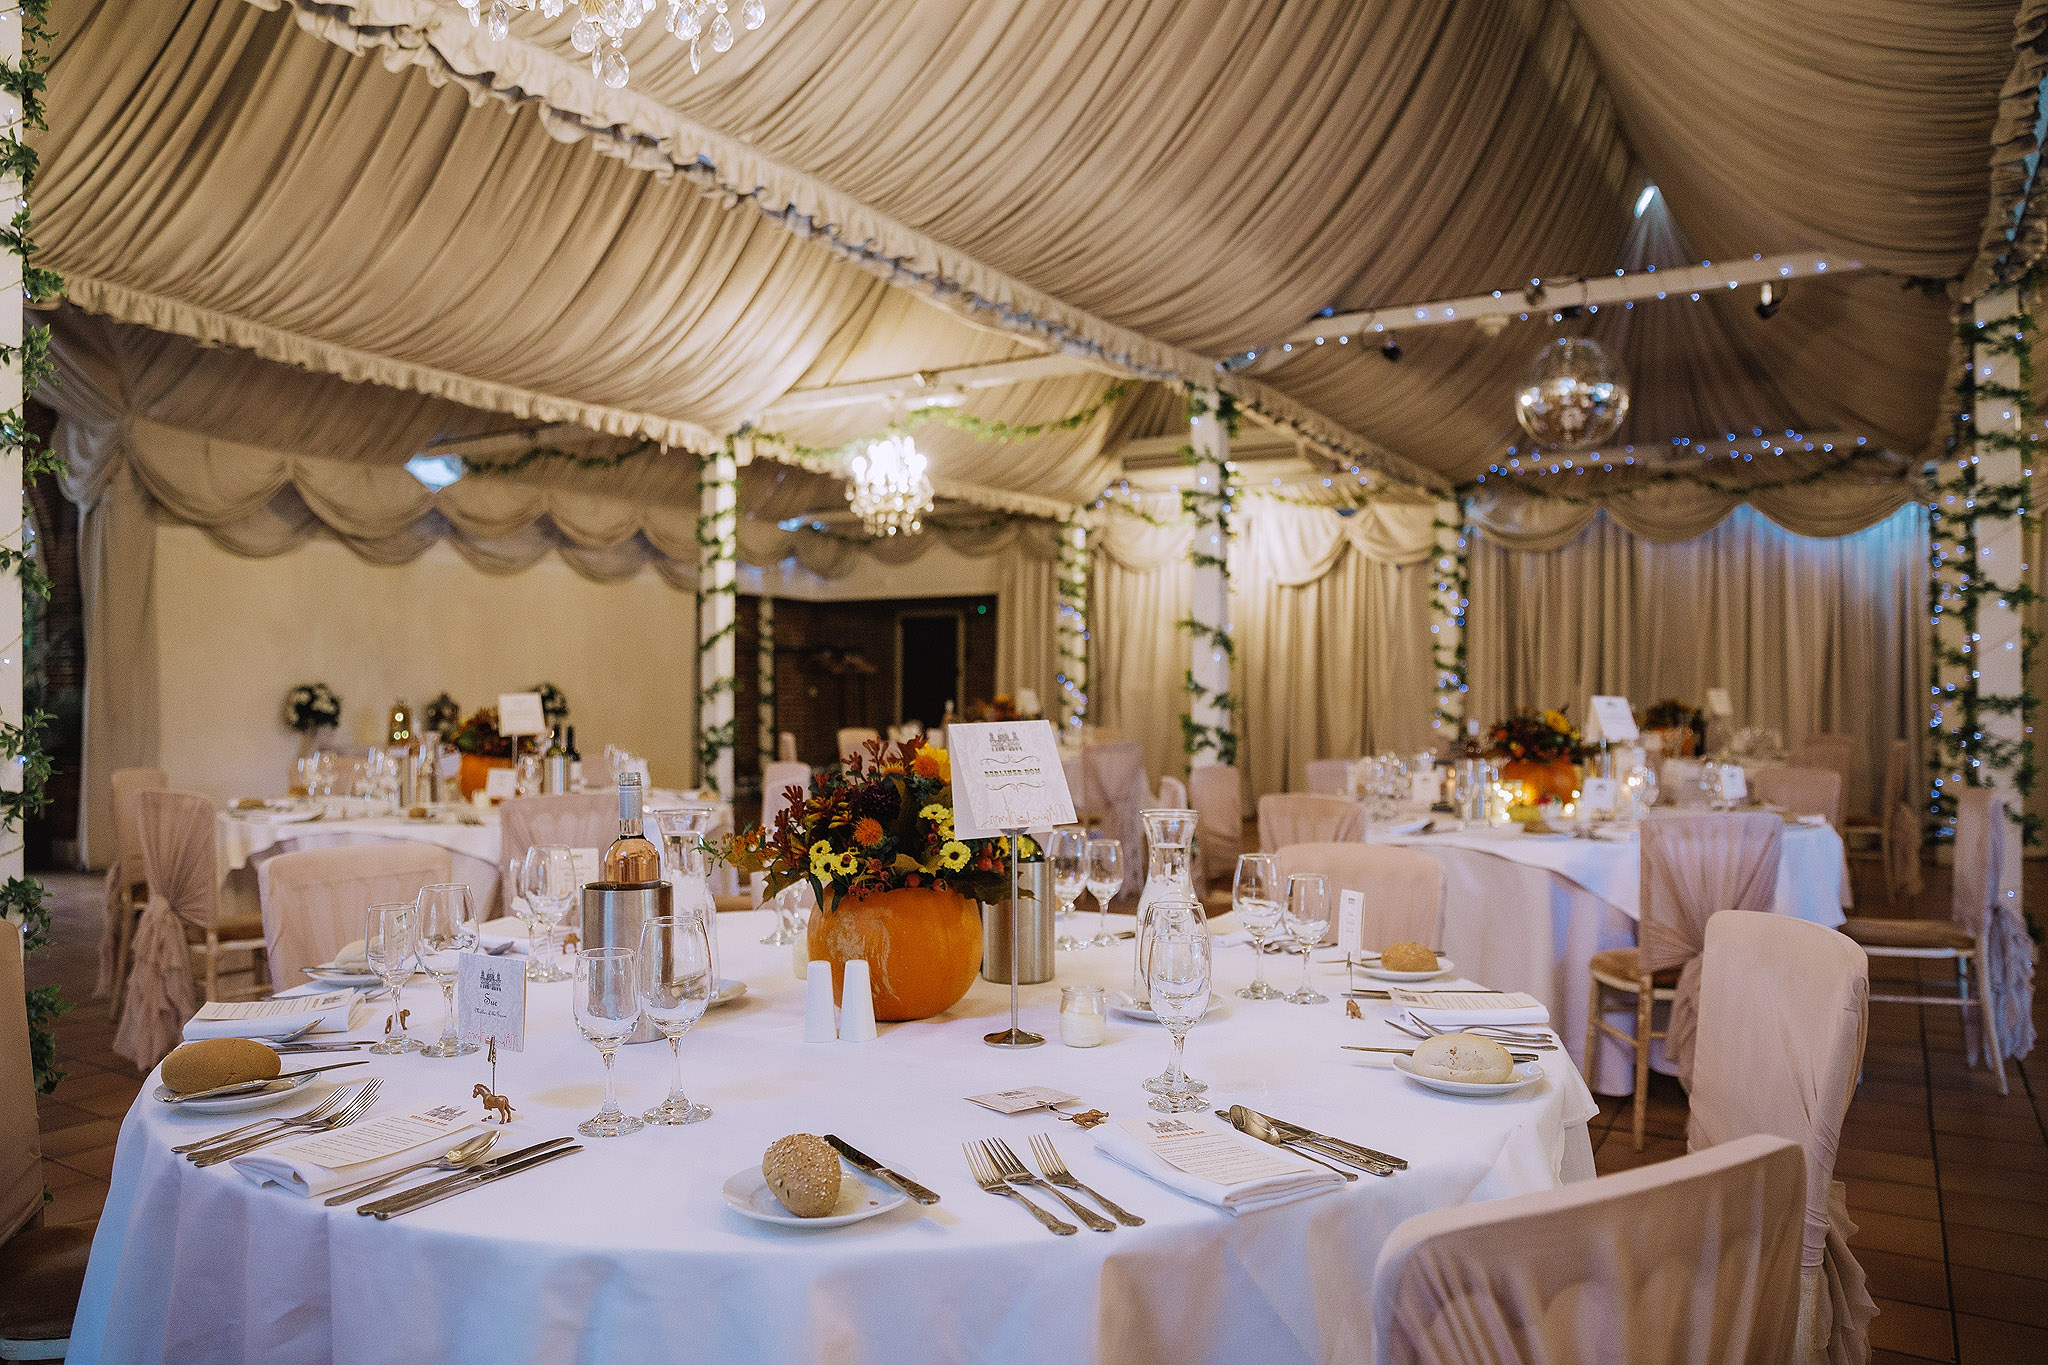 A look inside the wedding decor